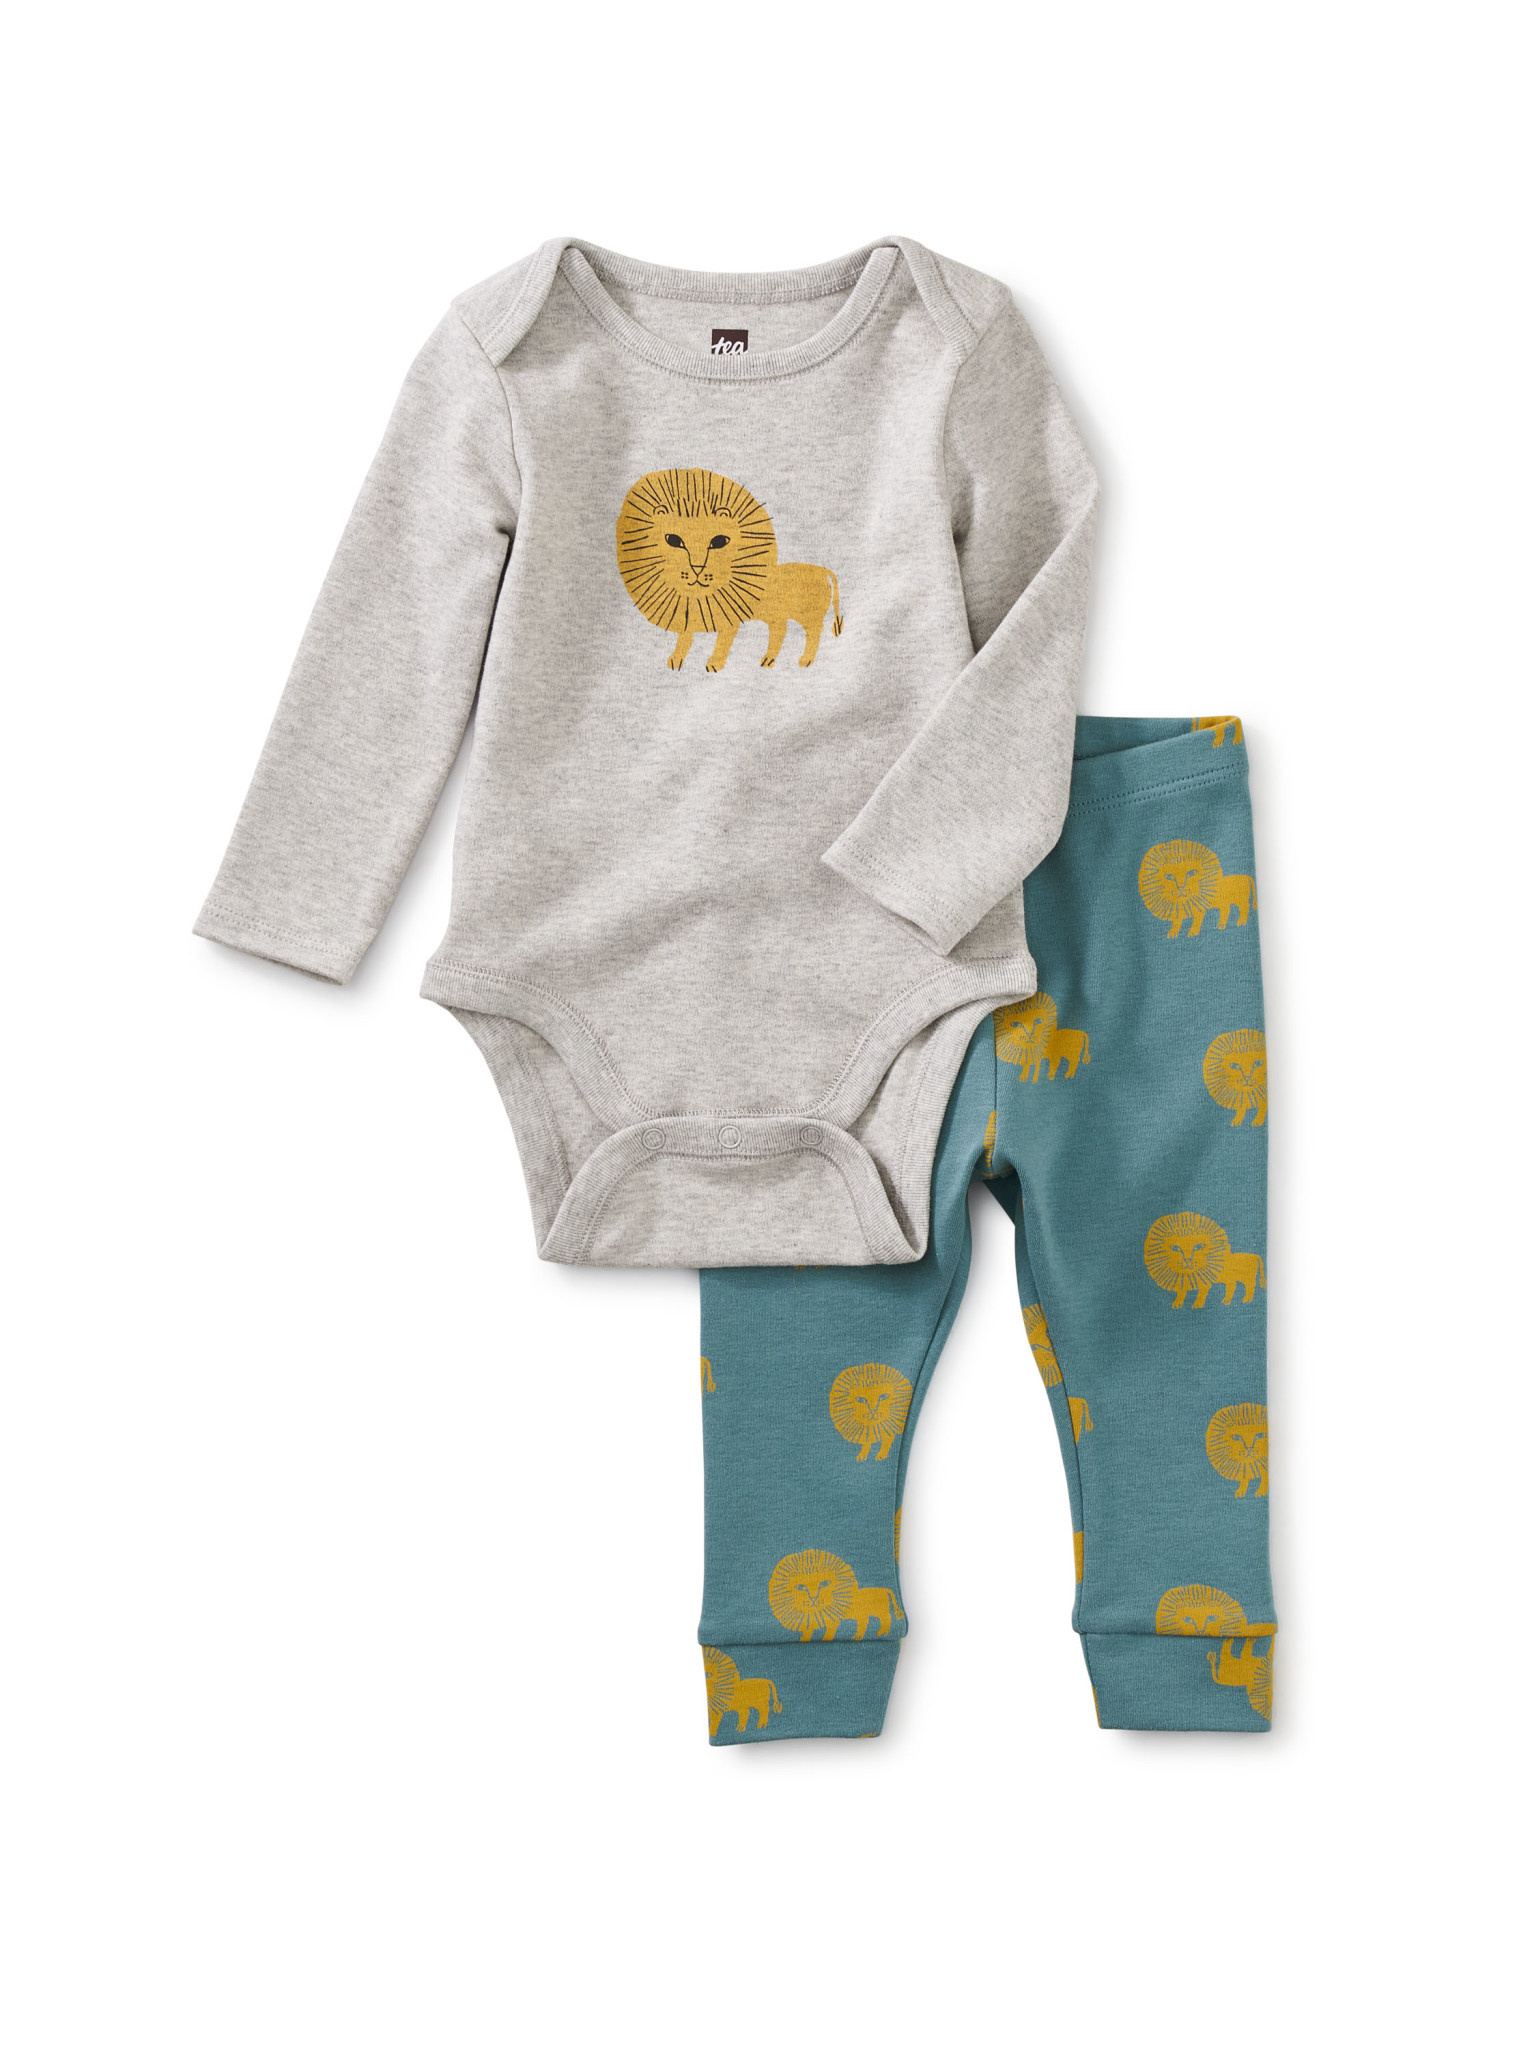 Tea Collection Bodysuit Baby Outfit- Lions